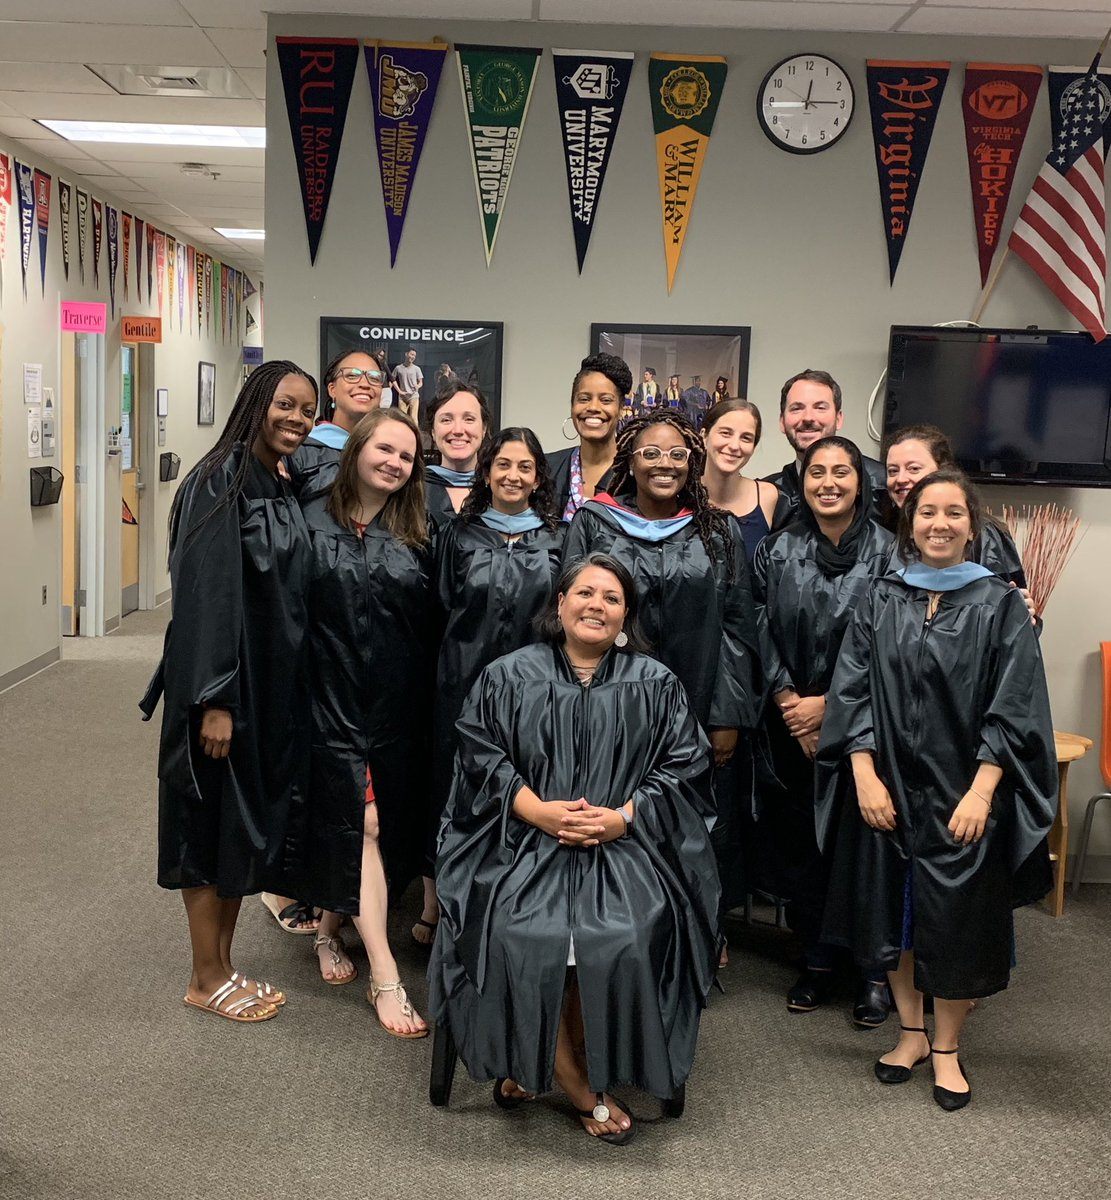 Some of our Student Services team! We love seeing our WL graduates. Wishing you success, joy, and way too much laughter ♥️ please come visit, this is your home. <a target='_blank' href='https://t.co/8h0KPdHo5p'>https://t.co/8h0KPdHo5p</a>